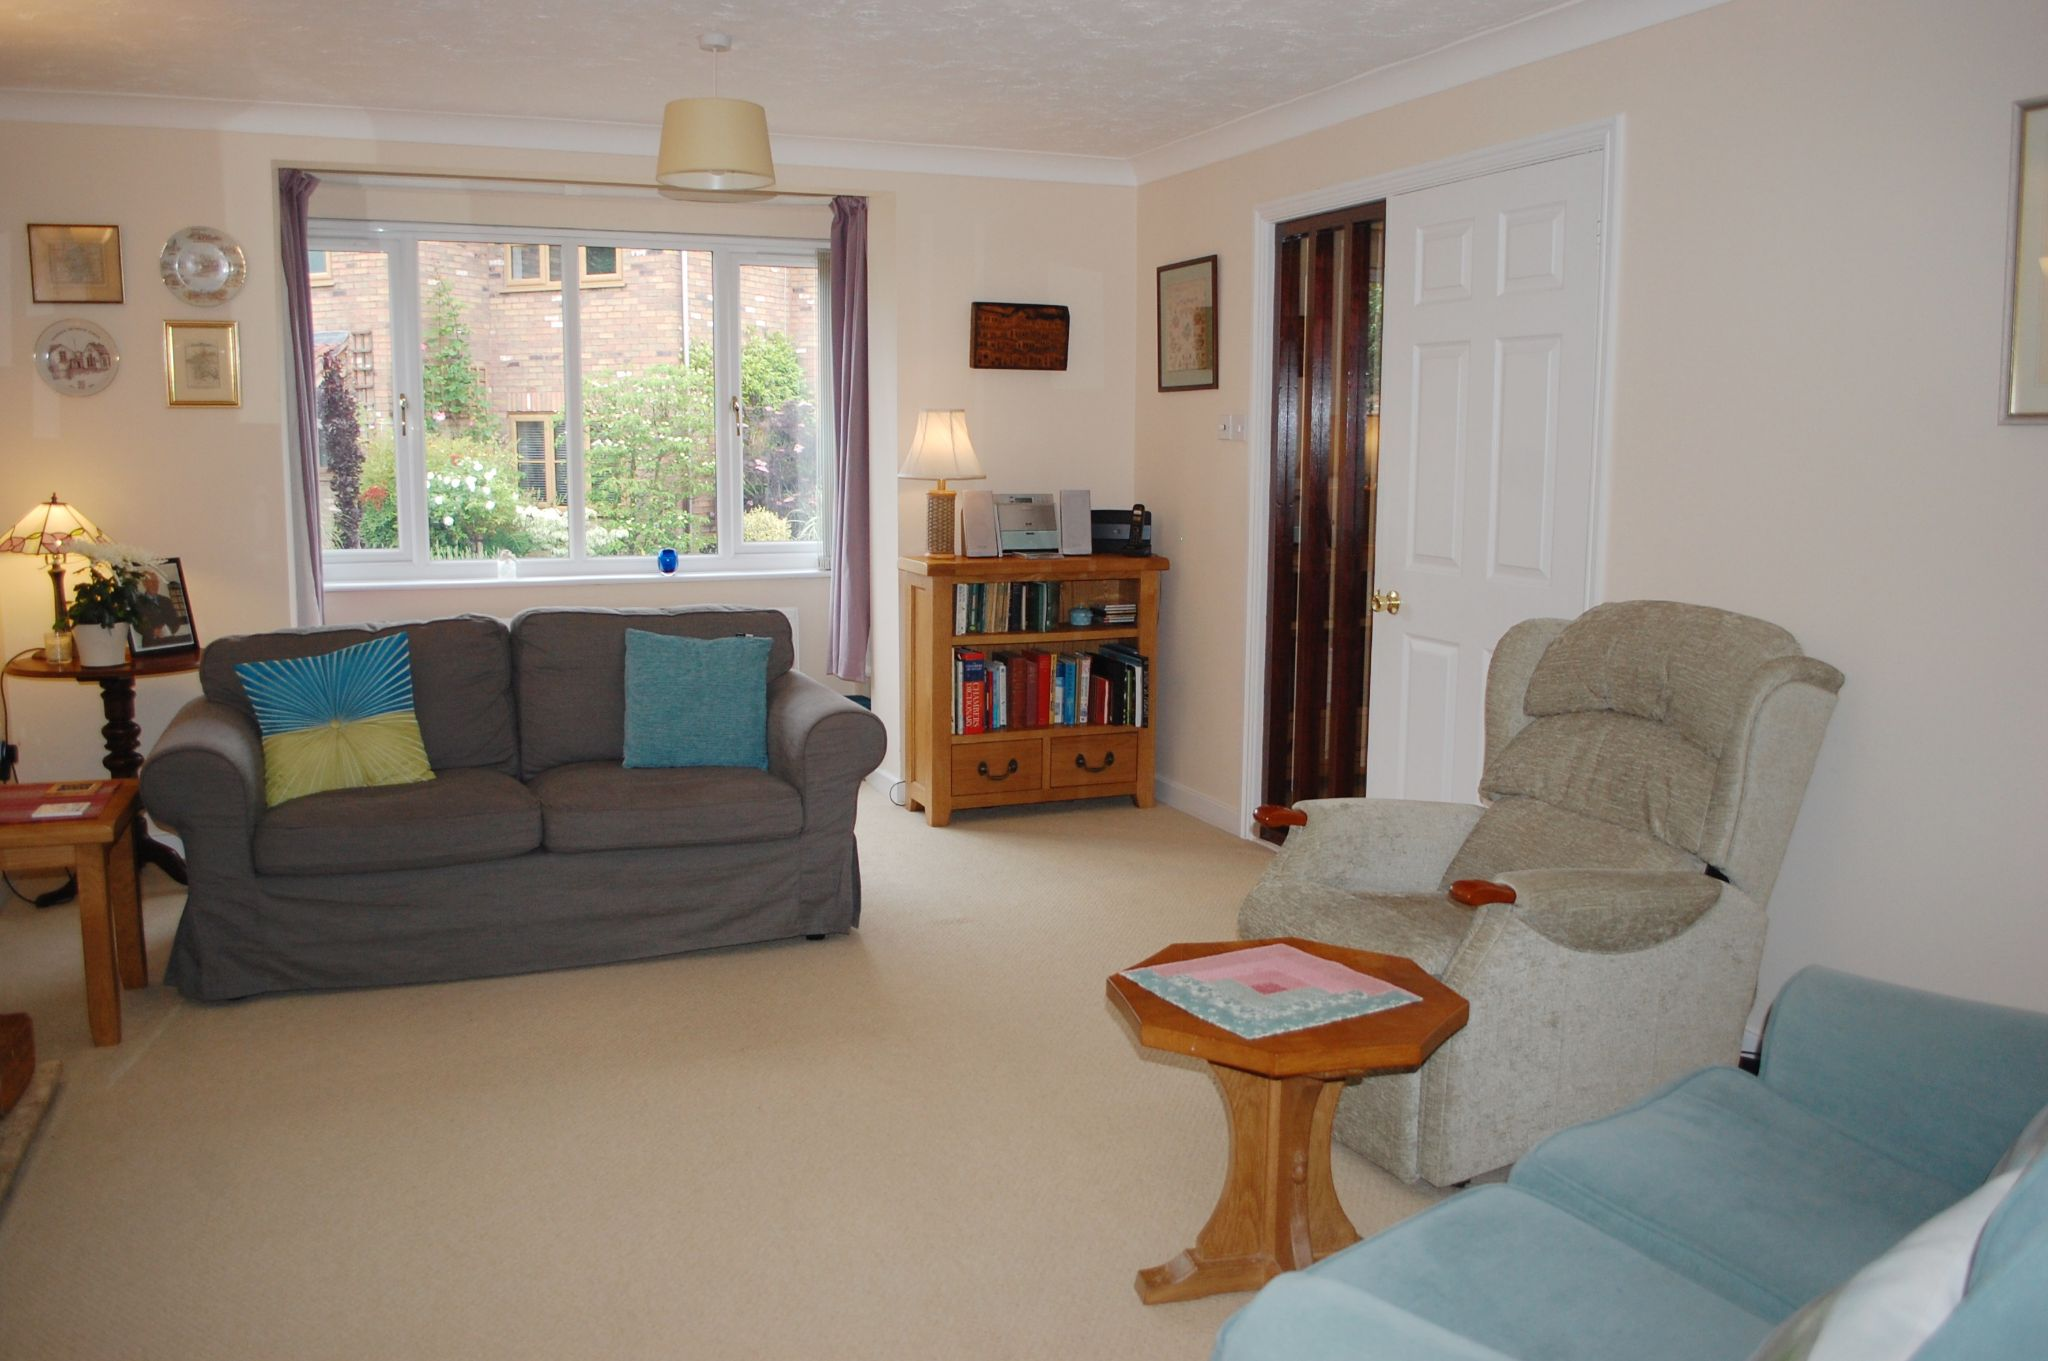 4 bedroom detached house SSTC Alcester - Photograph 3